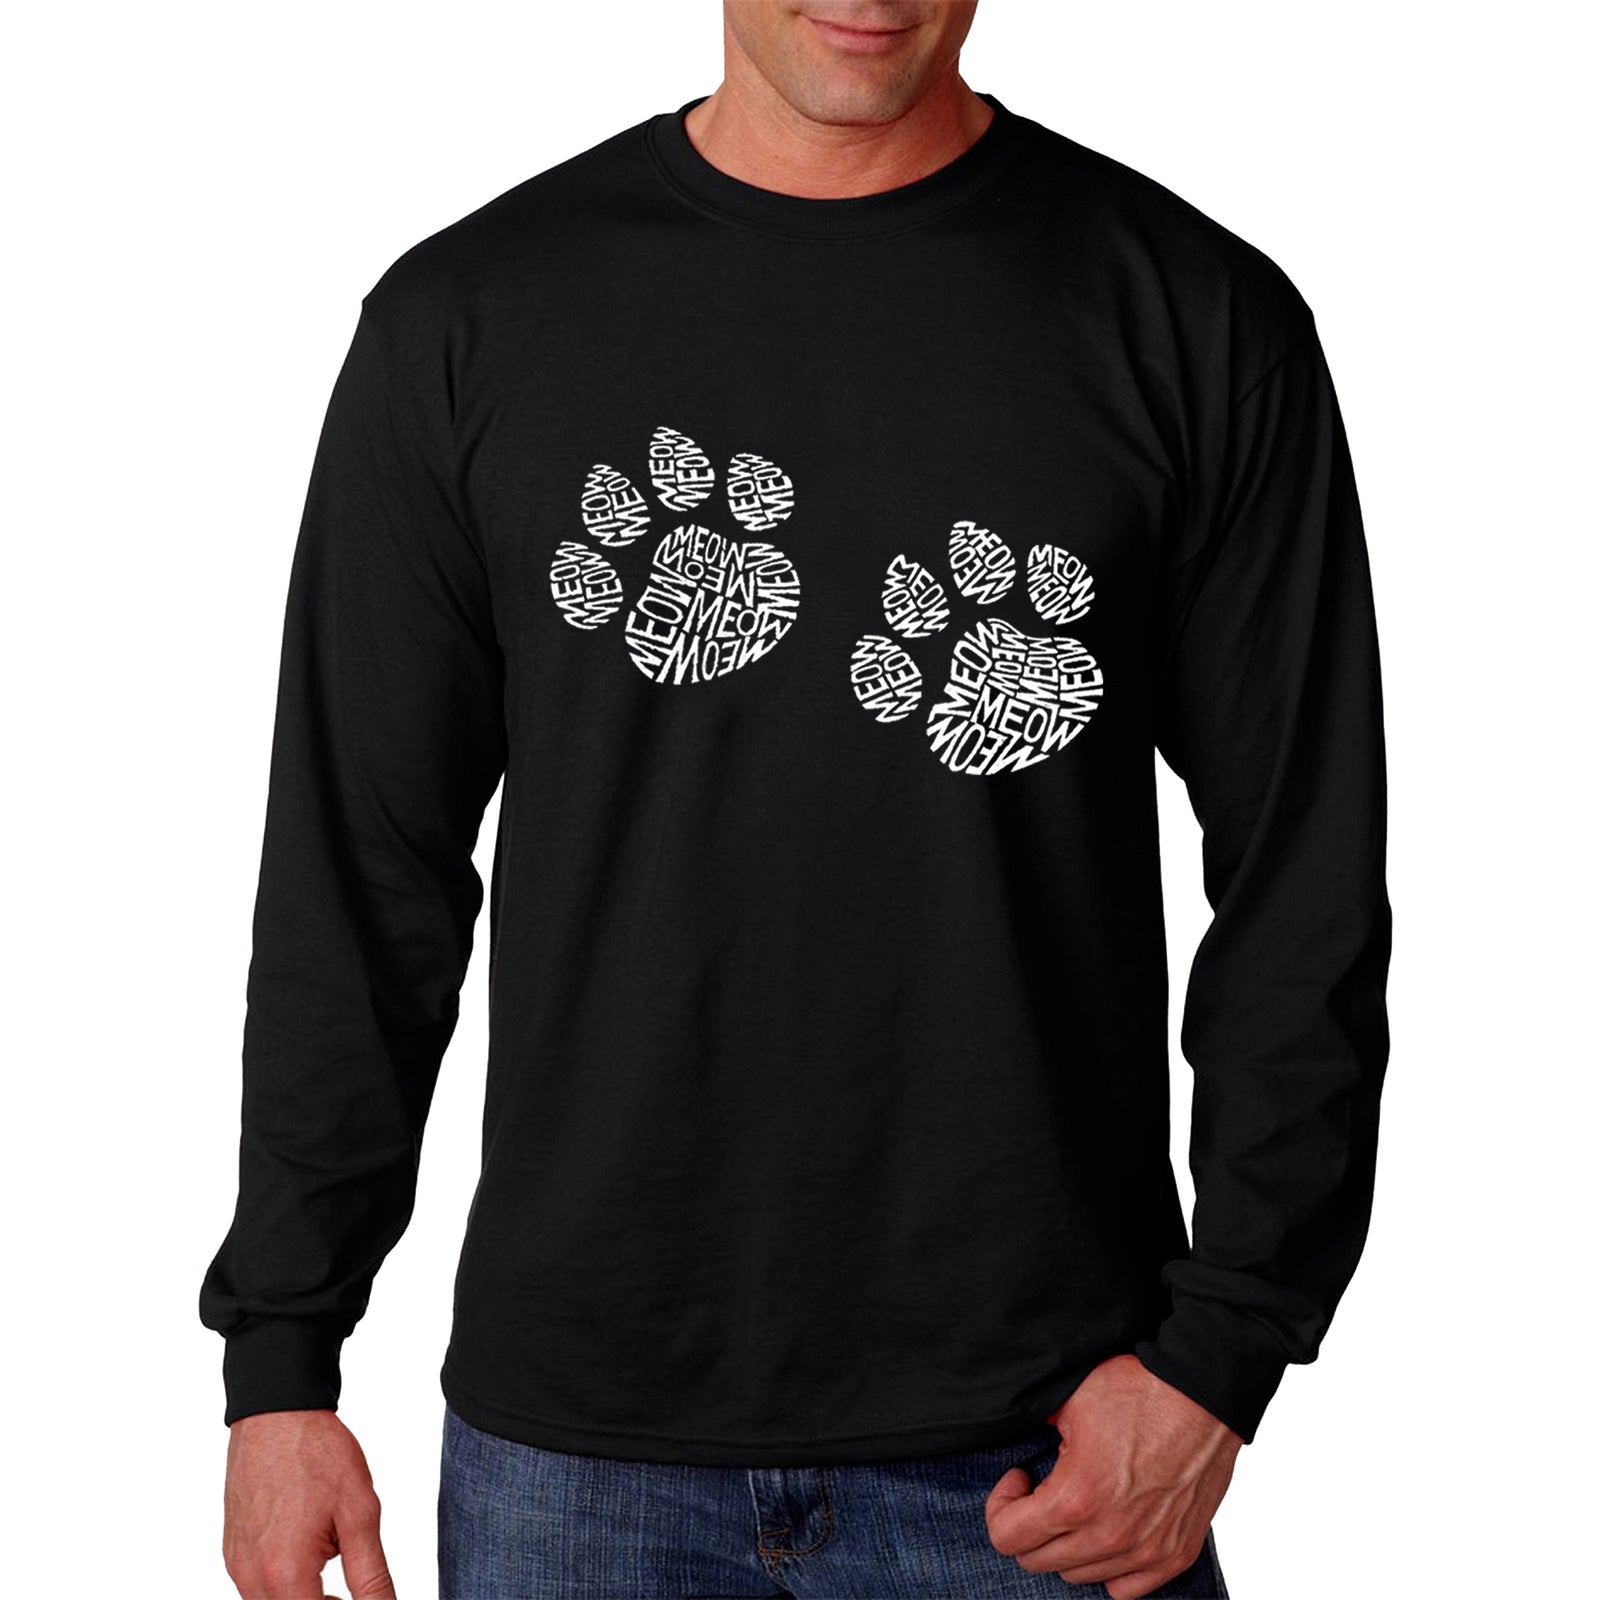 Men's Word Art Long Sleeve T-shirt - Meow Cat Prints